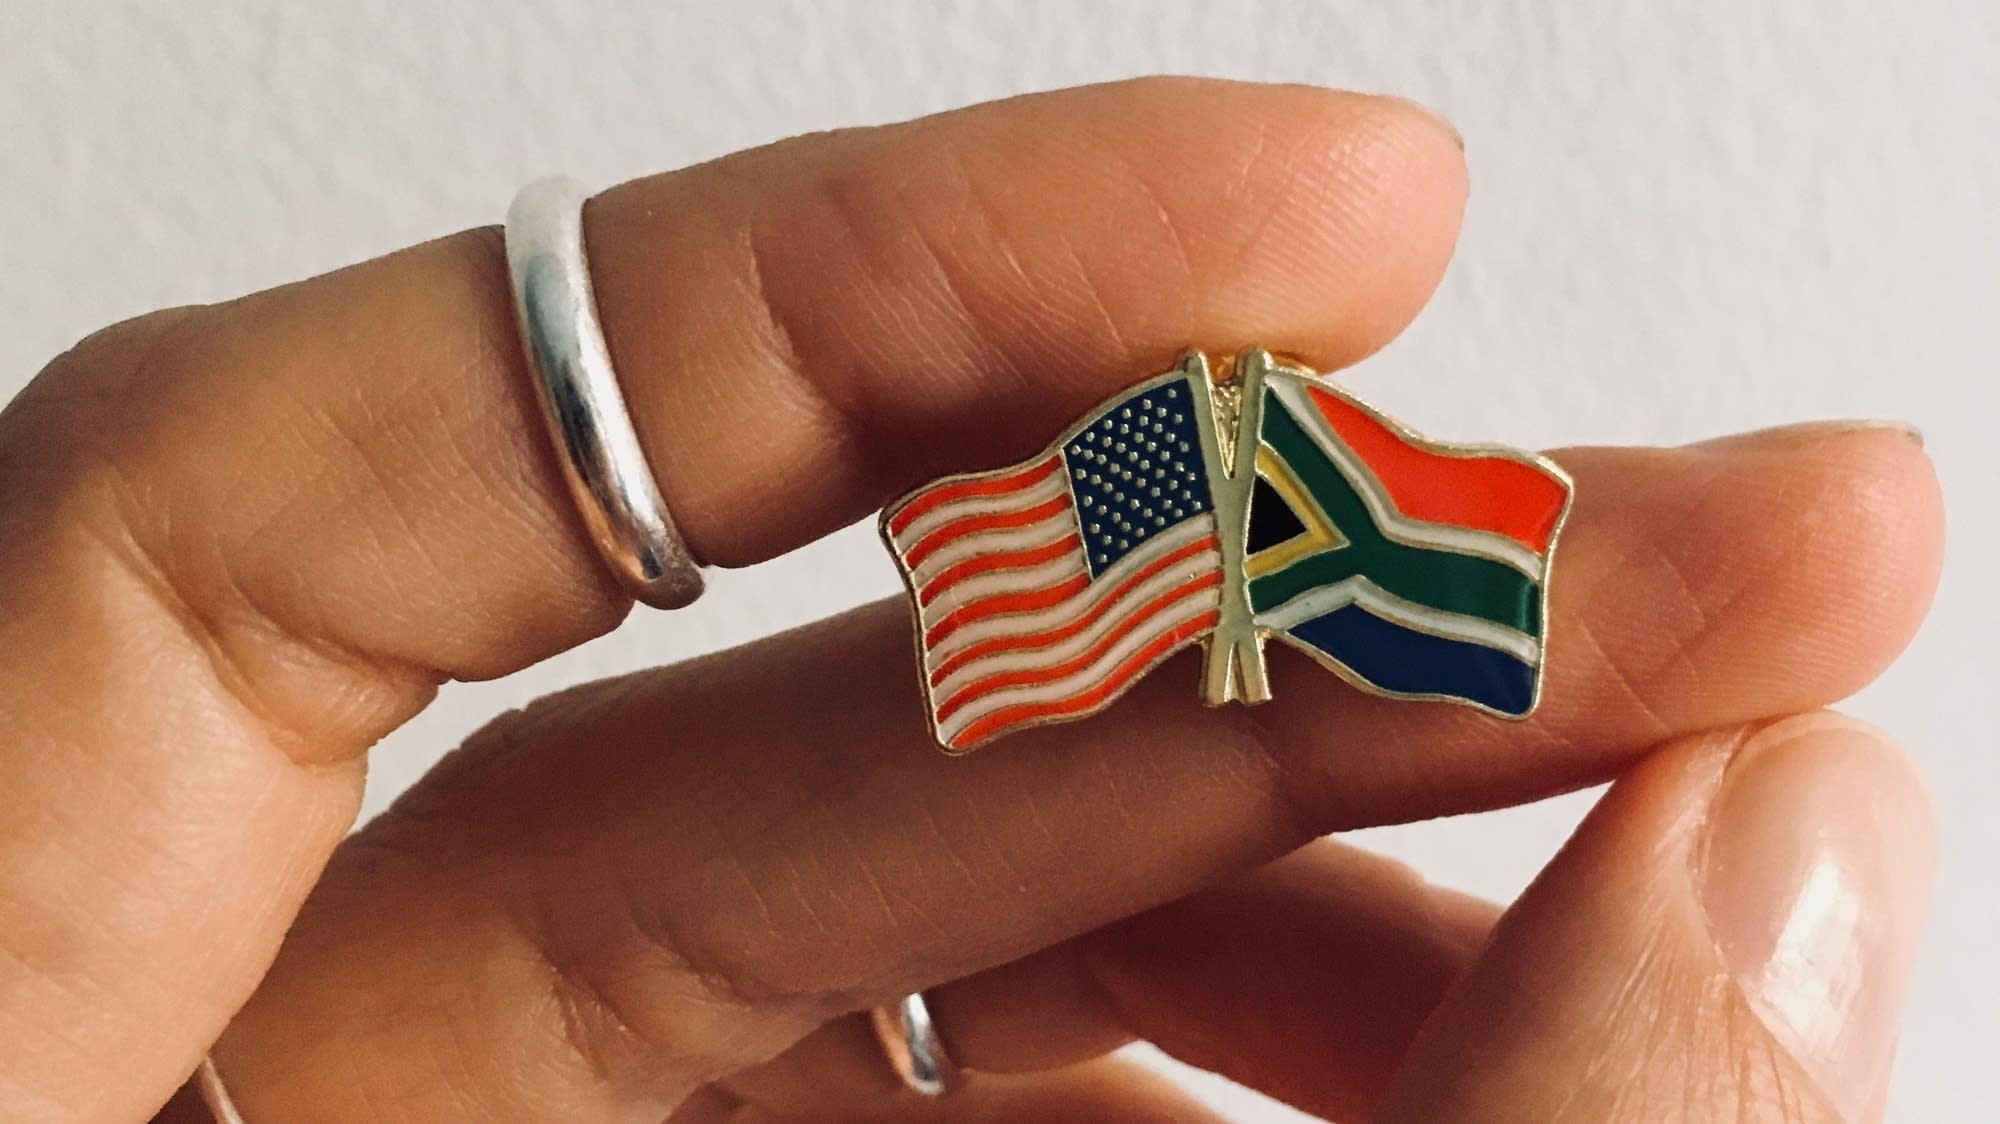 Dessa holds a pin showing the U.S. and South African Flags